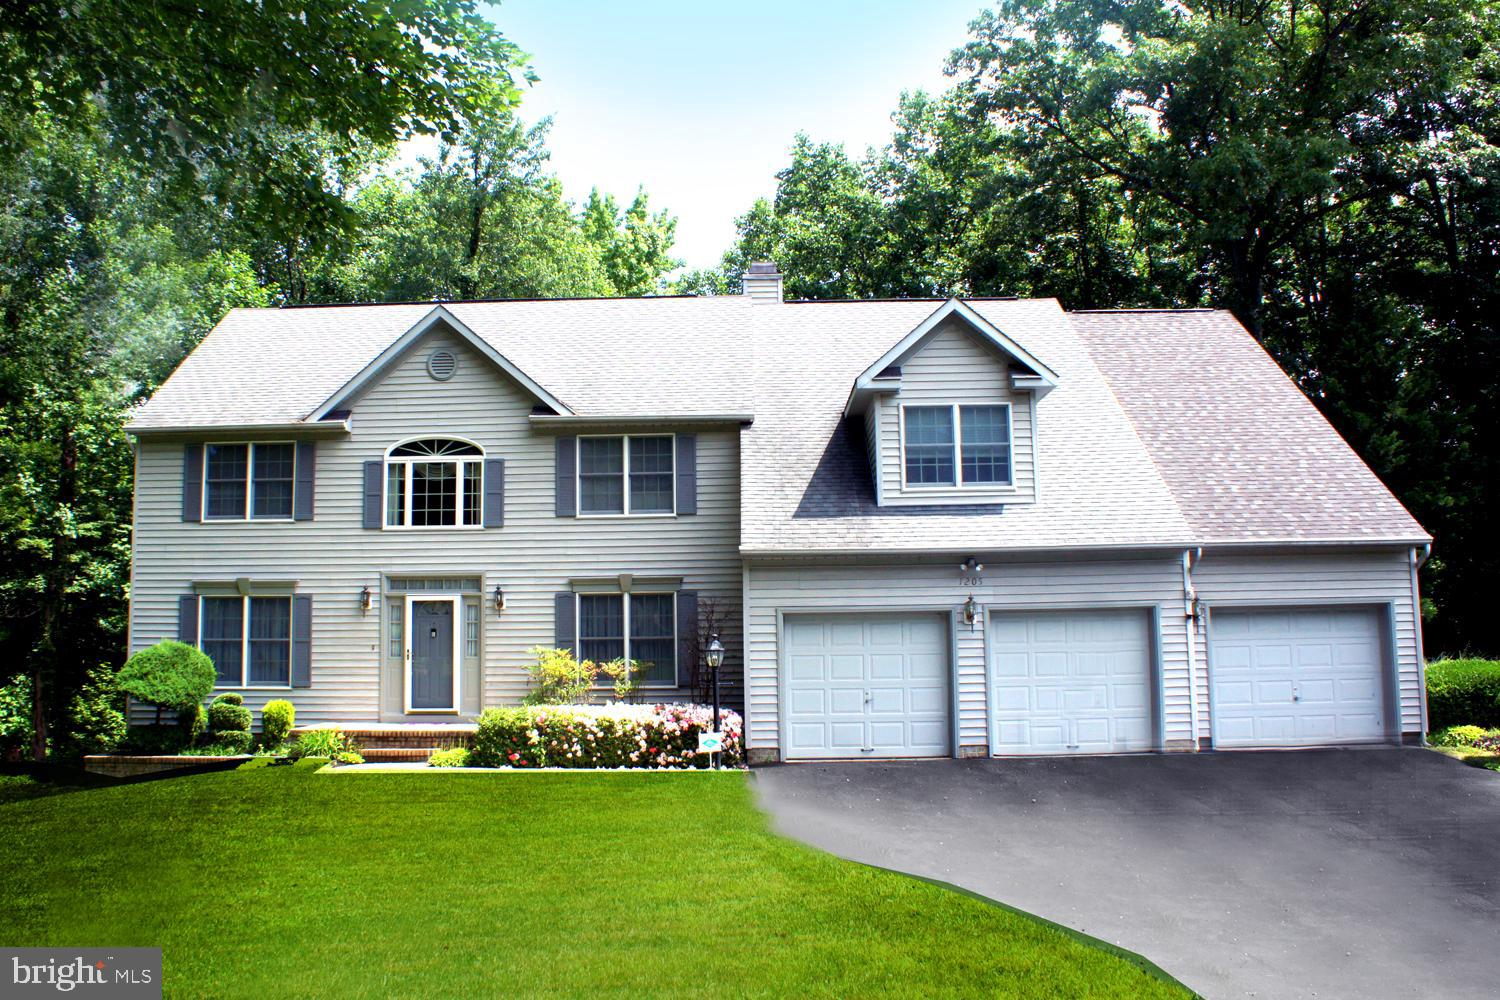 1205 ASQUITHPINES PLACE, ARNOLD, MD 21012